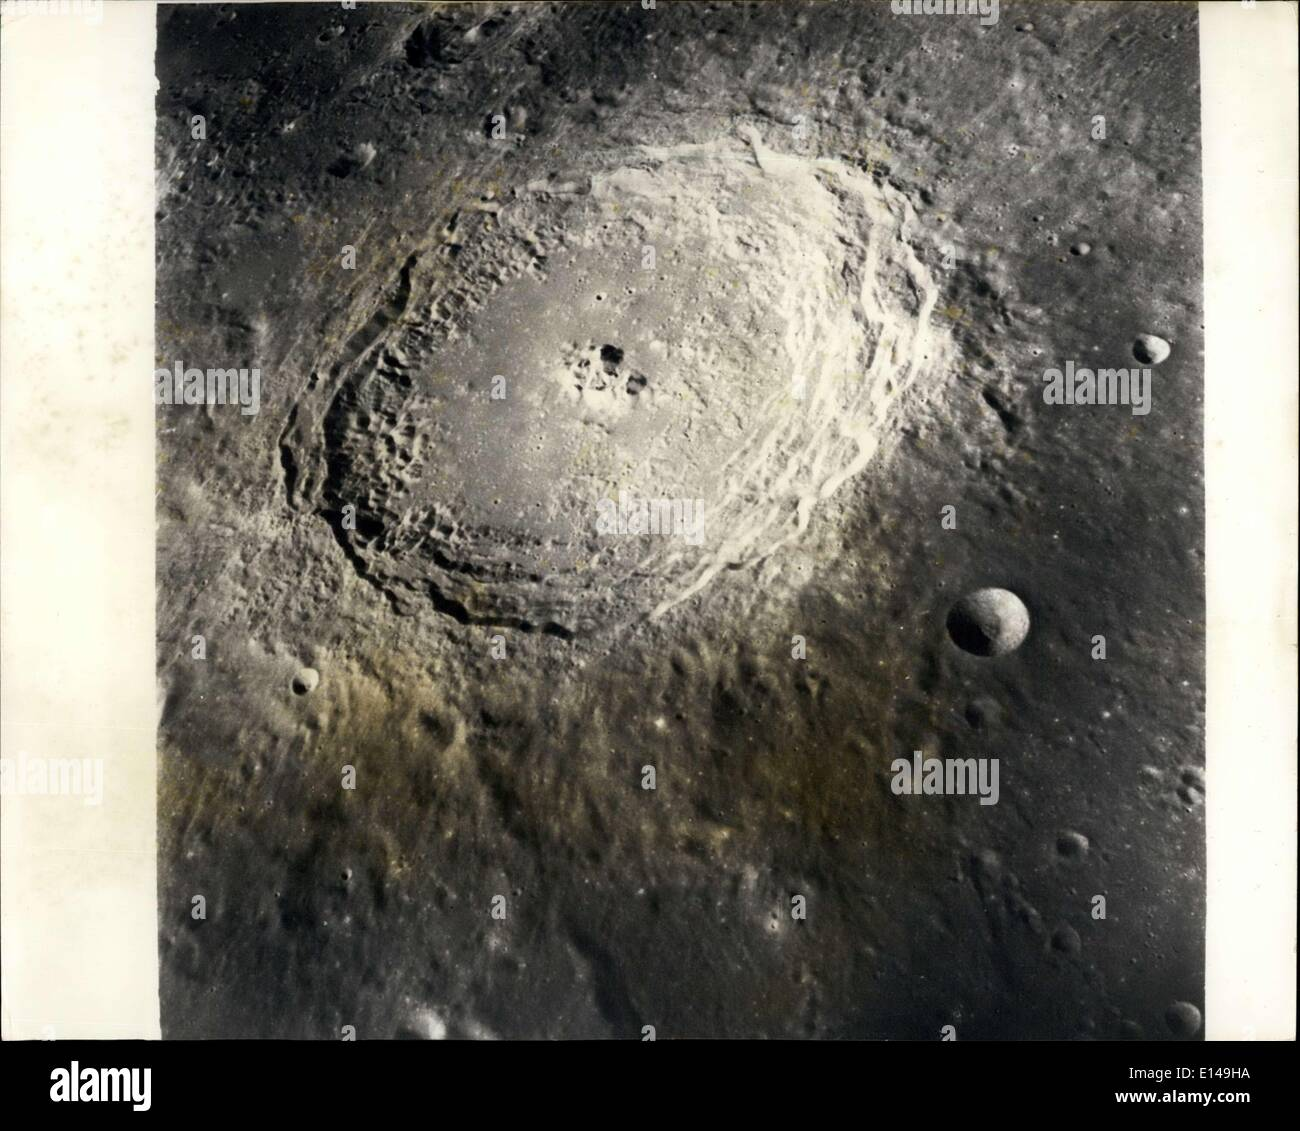 Apr. 17, 2012 - Apollo 8 Moon view: The crater Langrenus as photographed from an altitude of nearly 150 nautical miles as the Apollo 8 spacecraft orbited the moon on December 24th, 1968. Langrenus is about 85 statute miles in diameter. Command Moduel Pilot James A. Lovell described the crater, its central peak, and the conspicuous terrace on the inner crater wall shortly after acquiring earth communications for the first time after lunar orbit insertion. At the time the photograph was made, Langrenus was about 100 nautical miles (190 kilometres) south of the spacecraft ground track - Stock Image